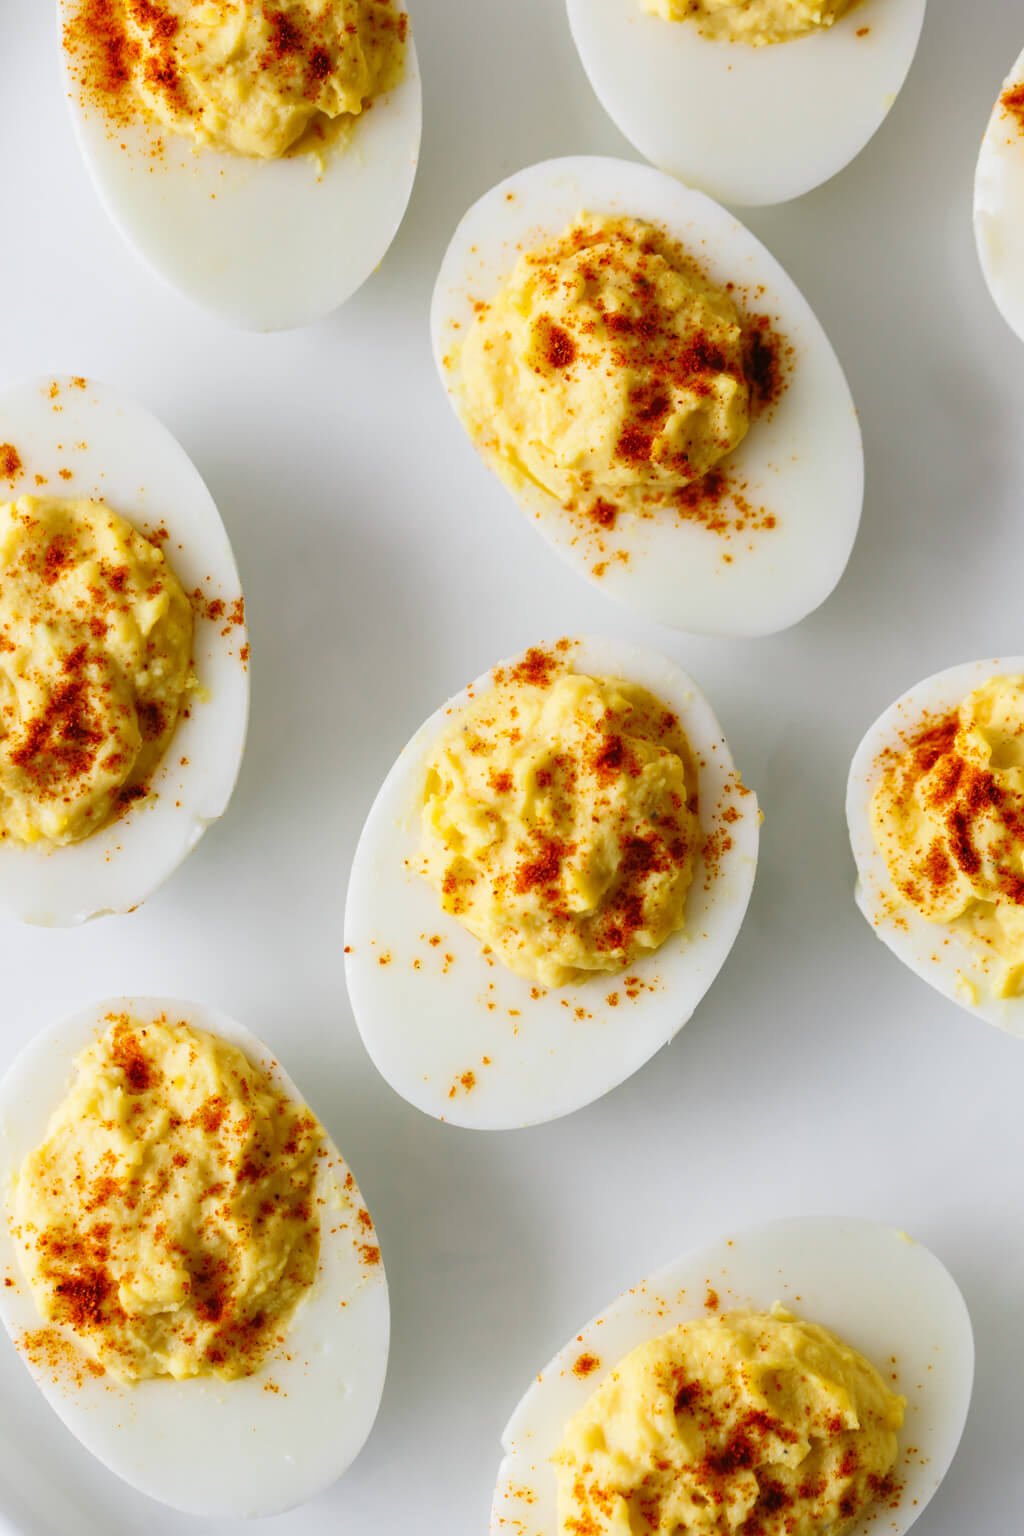 Deviled eggs on a white plate.